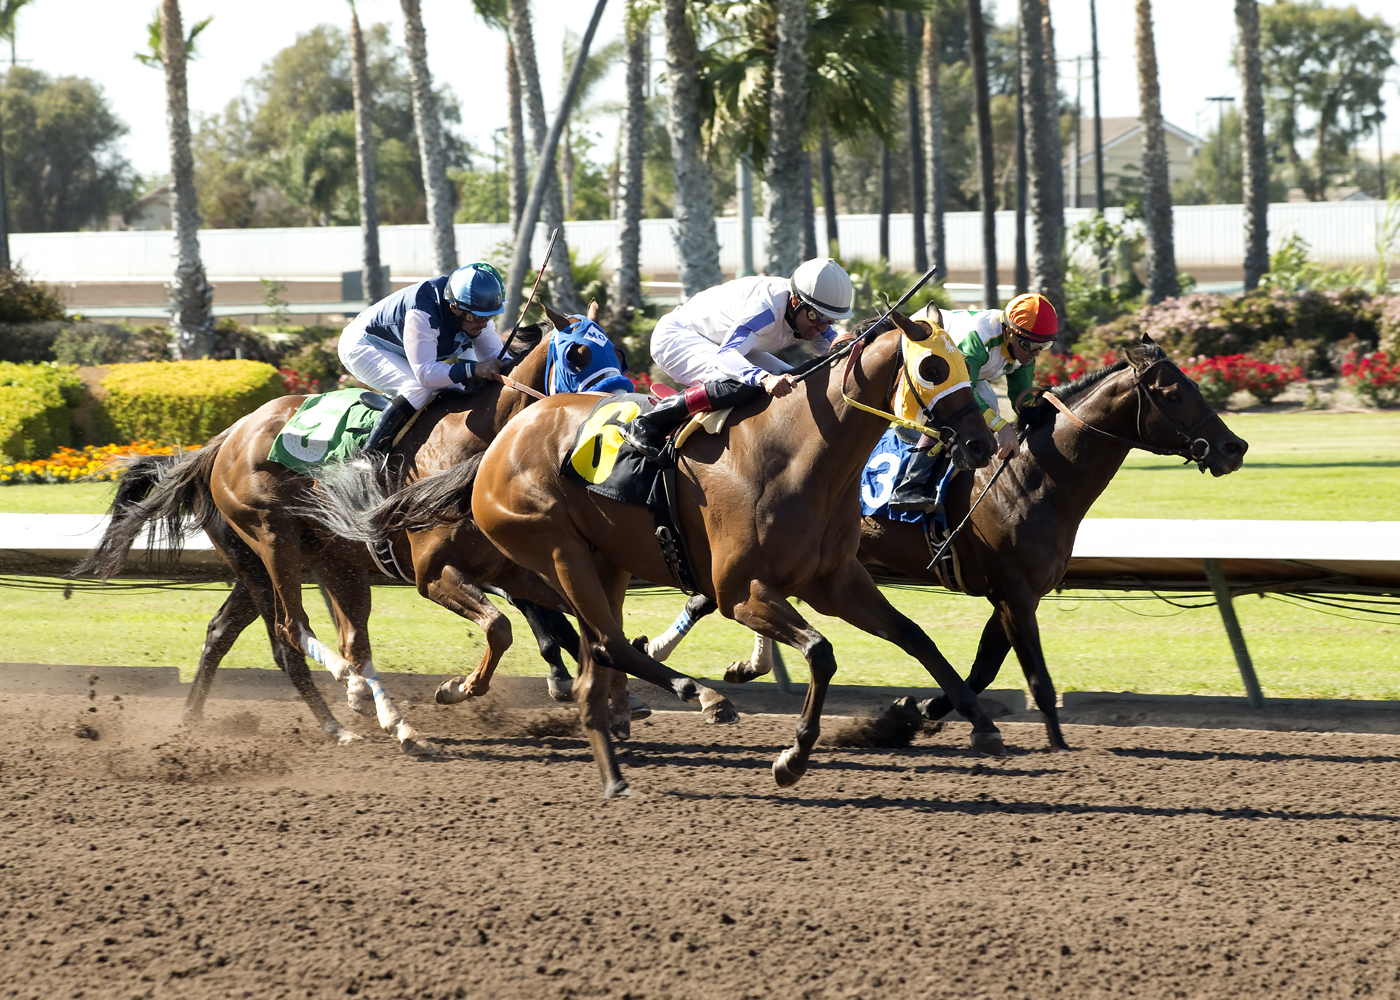 In a photo provided by Benoit Photo, San Onofre and jockey Edwin Maldonado, center, outleg Wild Dude, with Kent Desormeaux, right, and Raised a Secert, with Agapito Delgadillo, left, to win the Grade III, $100,000 Los Angeles Stakes horse race Saturday, A